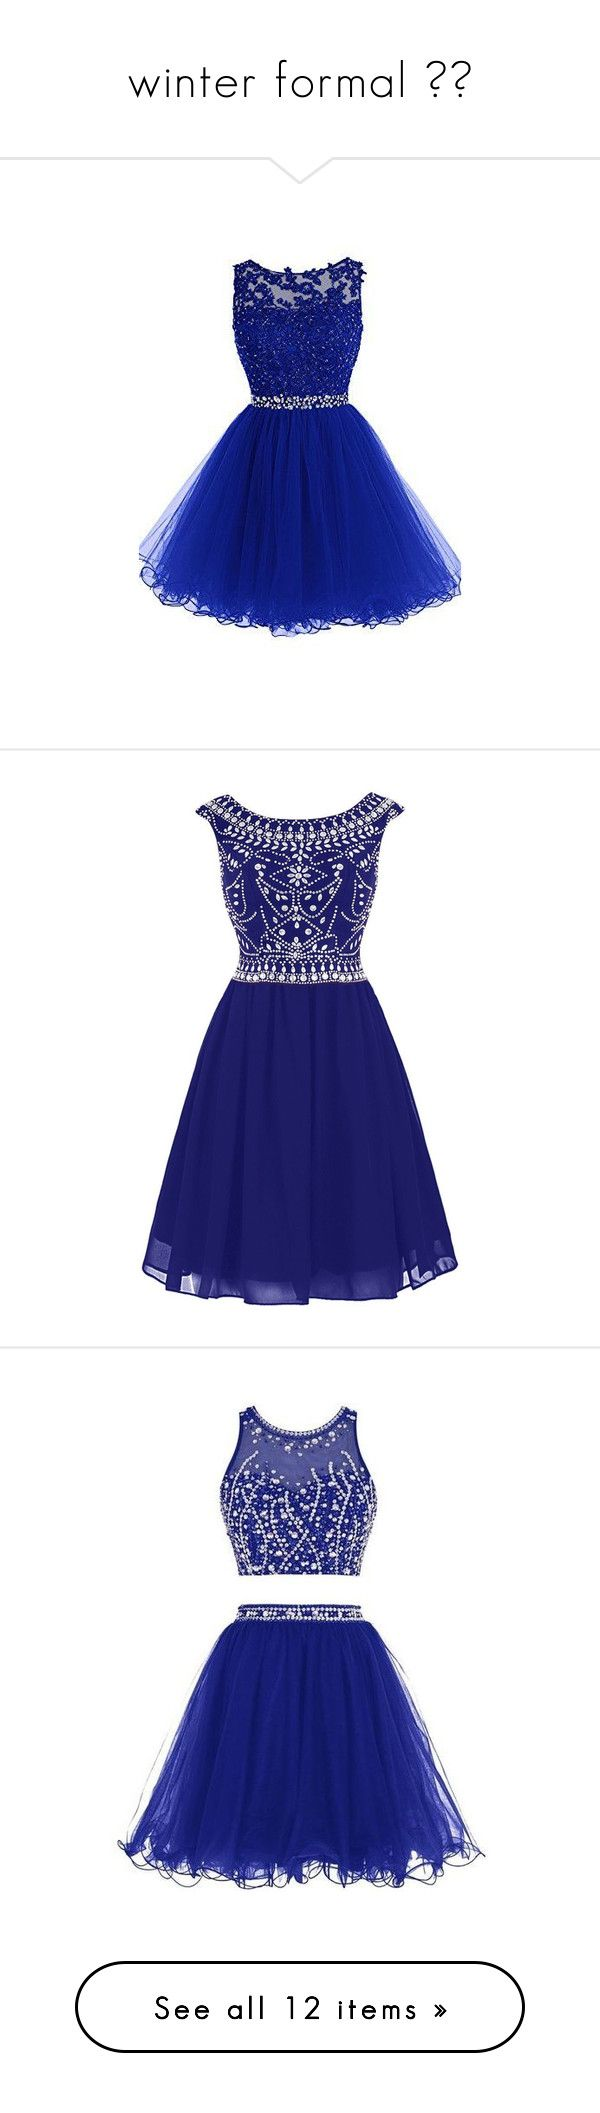 """""""winter formal ❄︎"""" by summerbarnesofficial ❤ liked on Polyvore featuring dresses, short beaded cocktail dresses, short dresses, short beaded dress, short prom dresses, cocktail prom dress, short cocktail prom dresses, blue prom dresses, chiffon cocktail dresses and short blue dresses"""